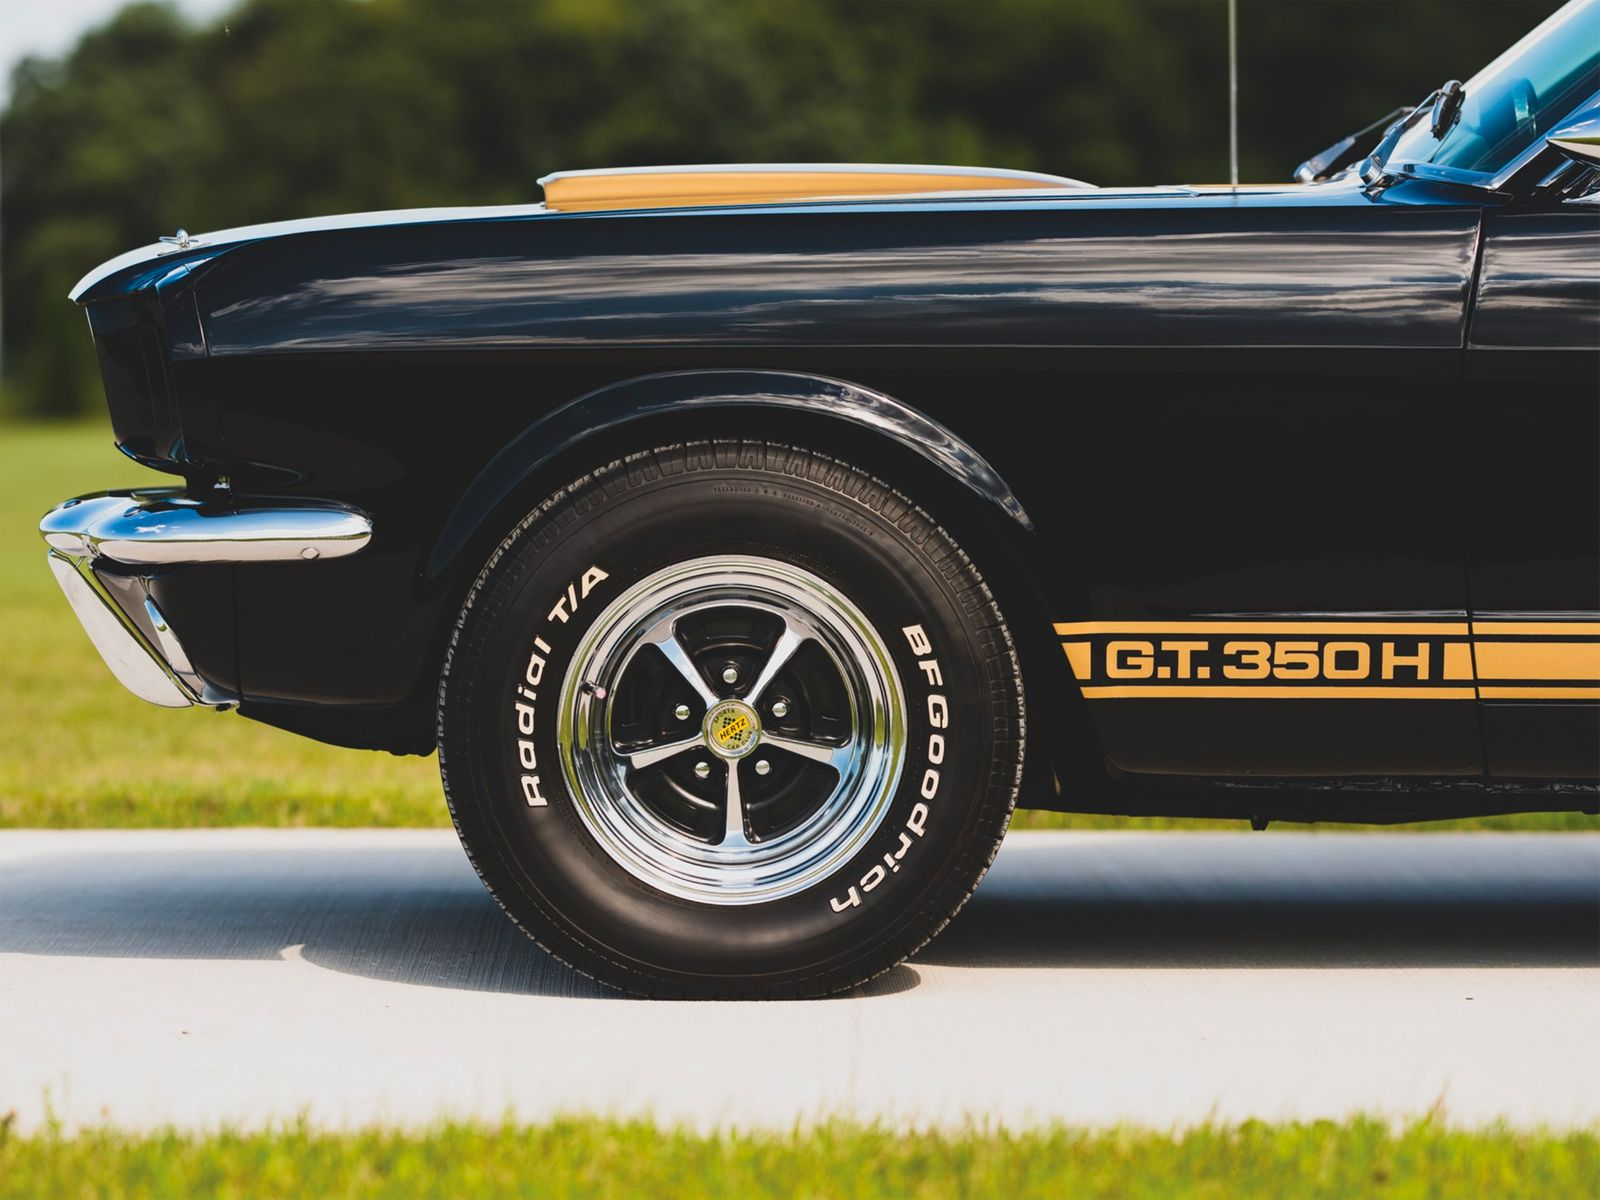 Auktion/ 1966 Shelby GT350 H